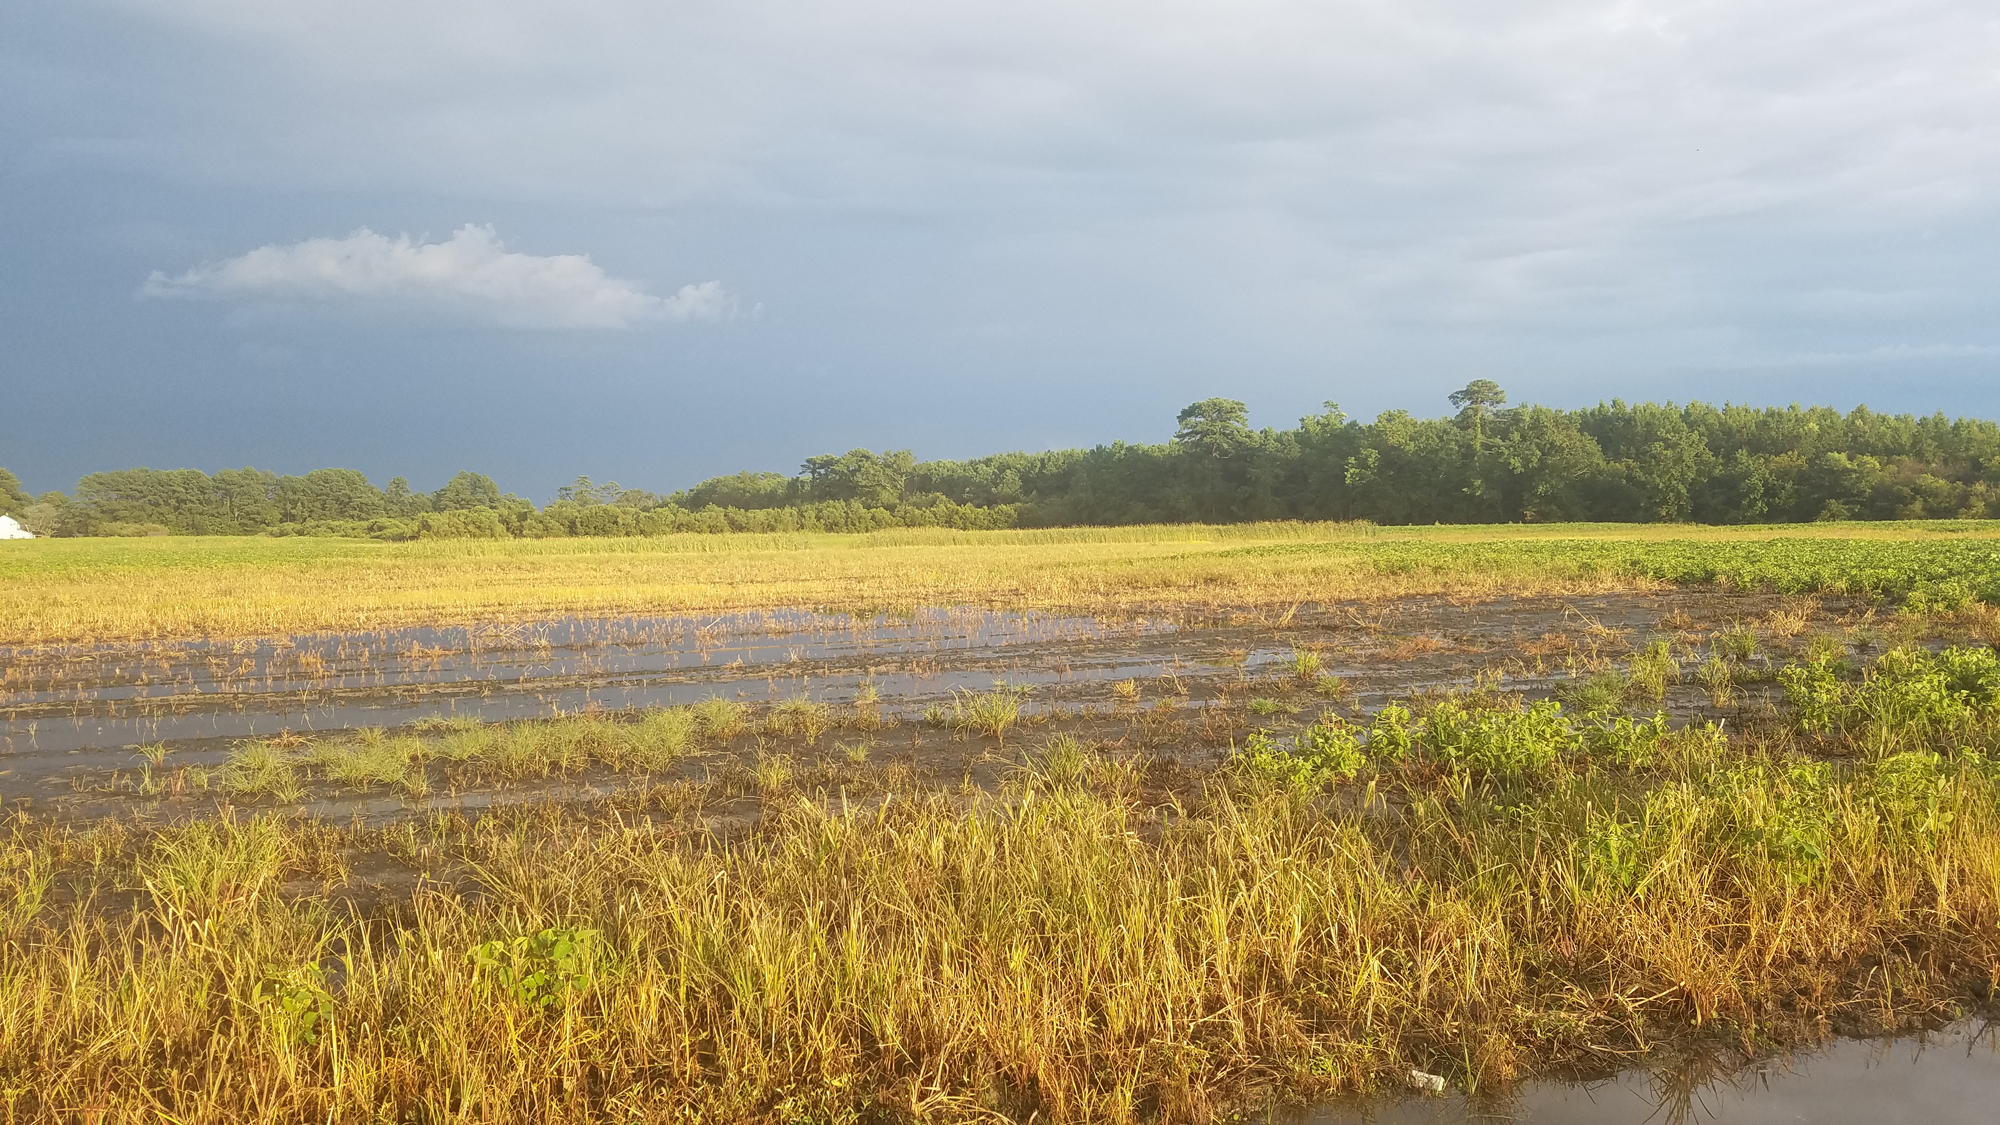 Flooded Field / 7 Aug / Shipps Cabin Rd.